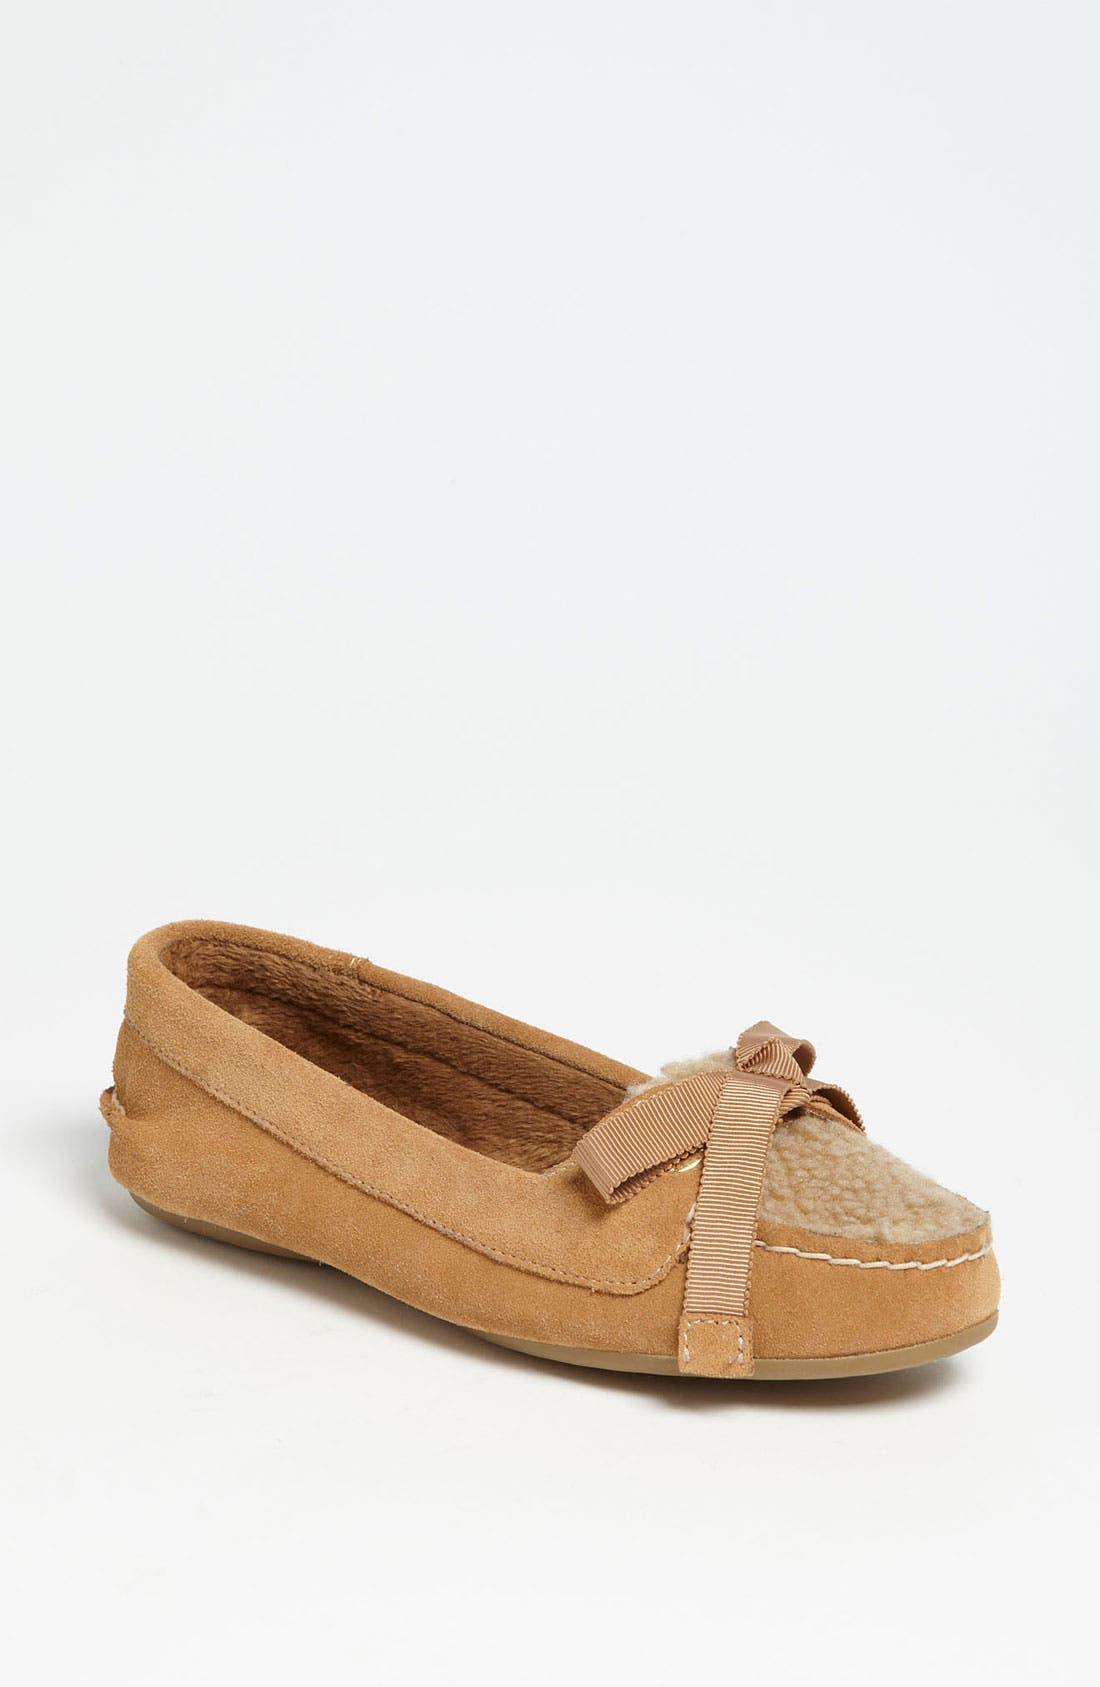 Main Image - Sperry Top-Sider® 'Skipper' Slipper